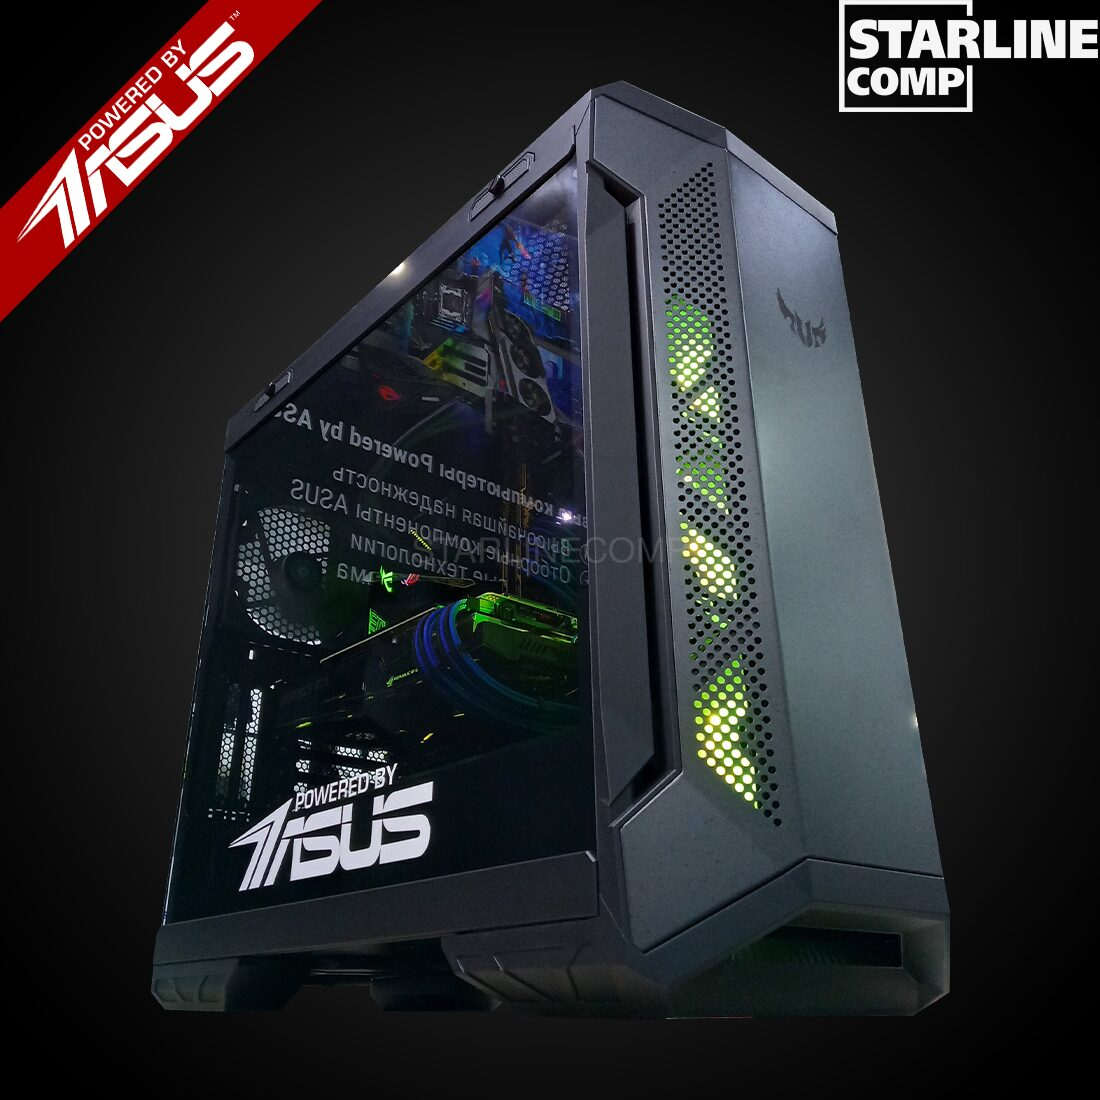 POWERED BY ASUS Intel Core i9-9900KF, RTX2080Ti 11Gb, SSD 500Gb, HDD 2000Gb